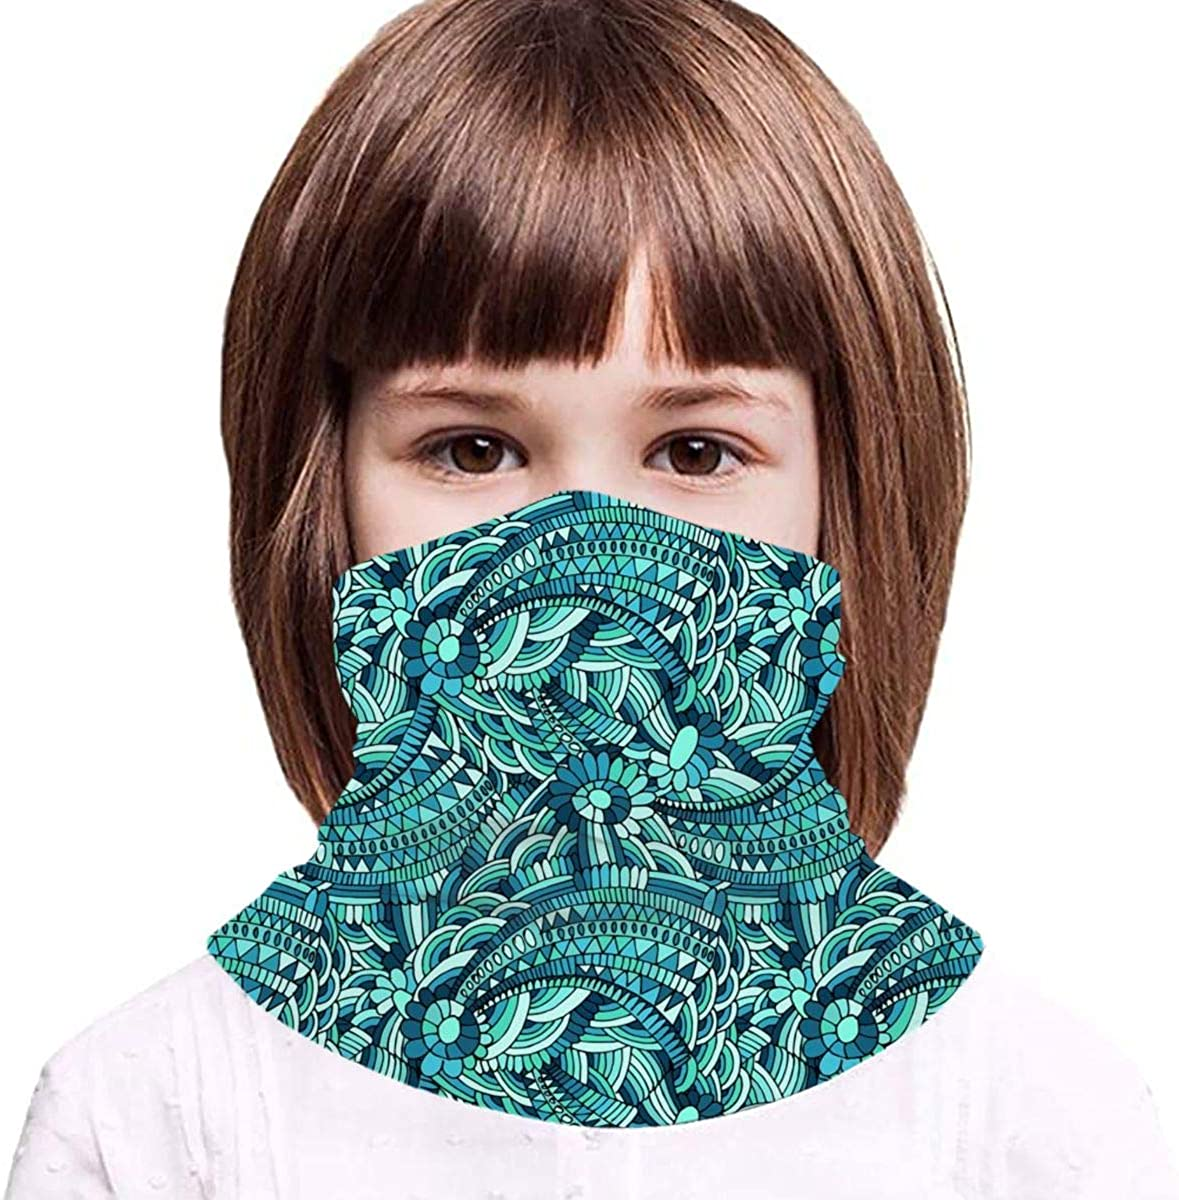 Blue Waves Kids Face Mask Dust Sun UV Protection Neck Gaiter Balaclava Face Cover Scarf Summer Breathable for Cycling Fishing Outdoors